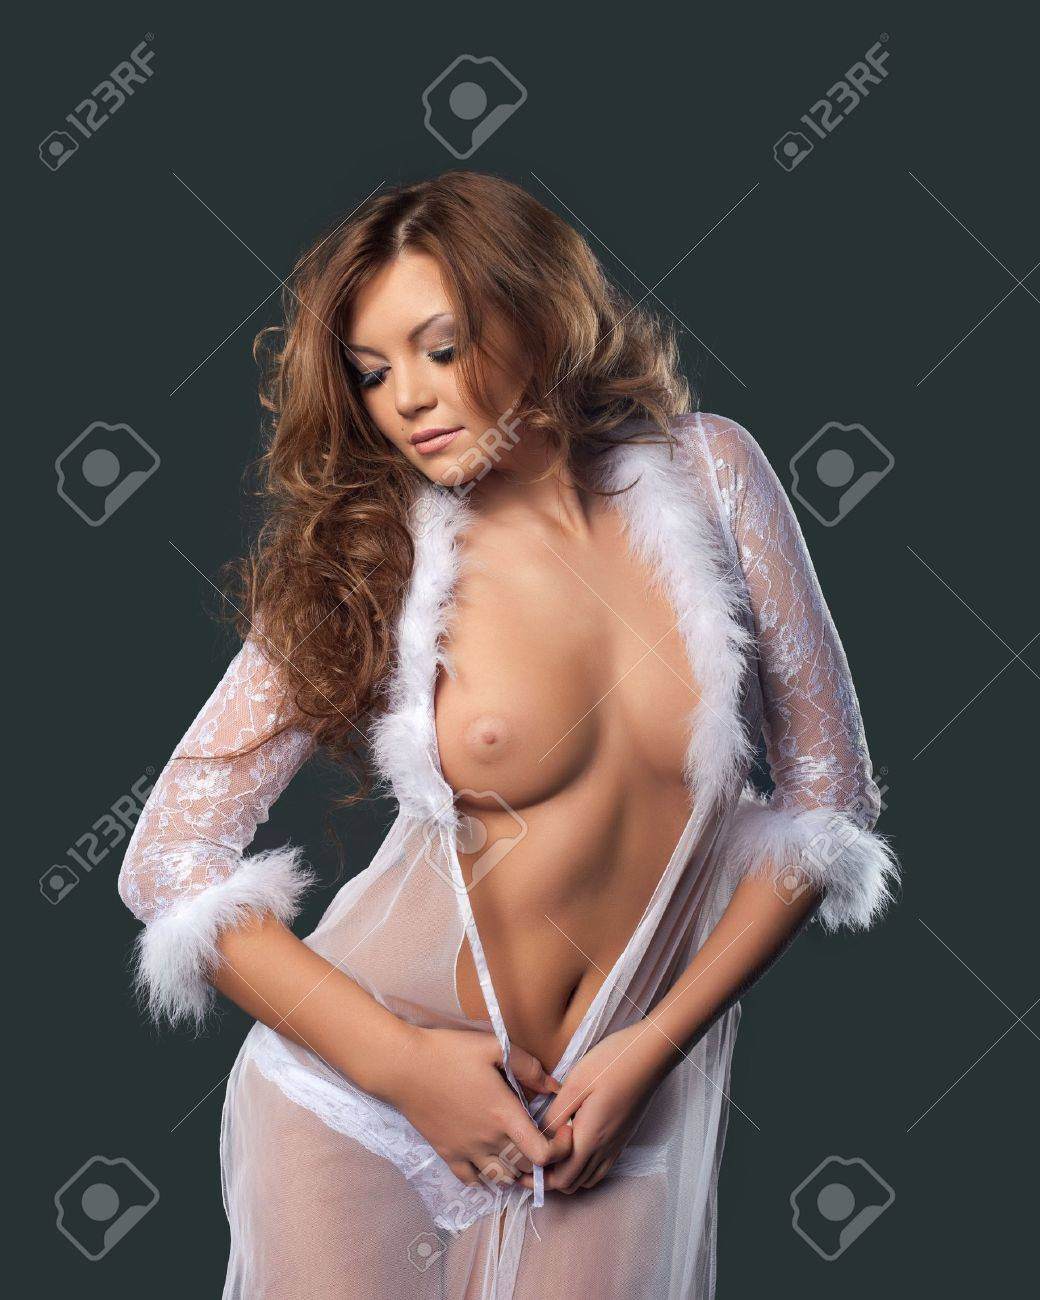 Sexy girl in white lingerie posing - look at camera Stock Photo - 11566877